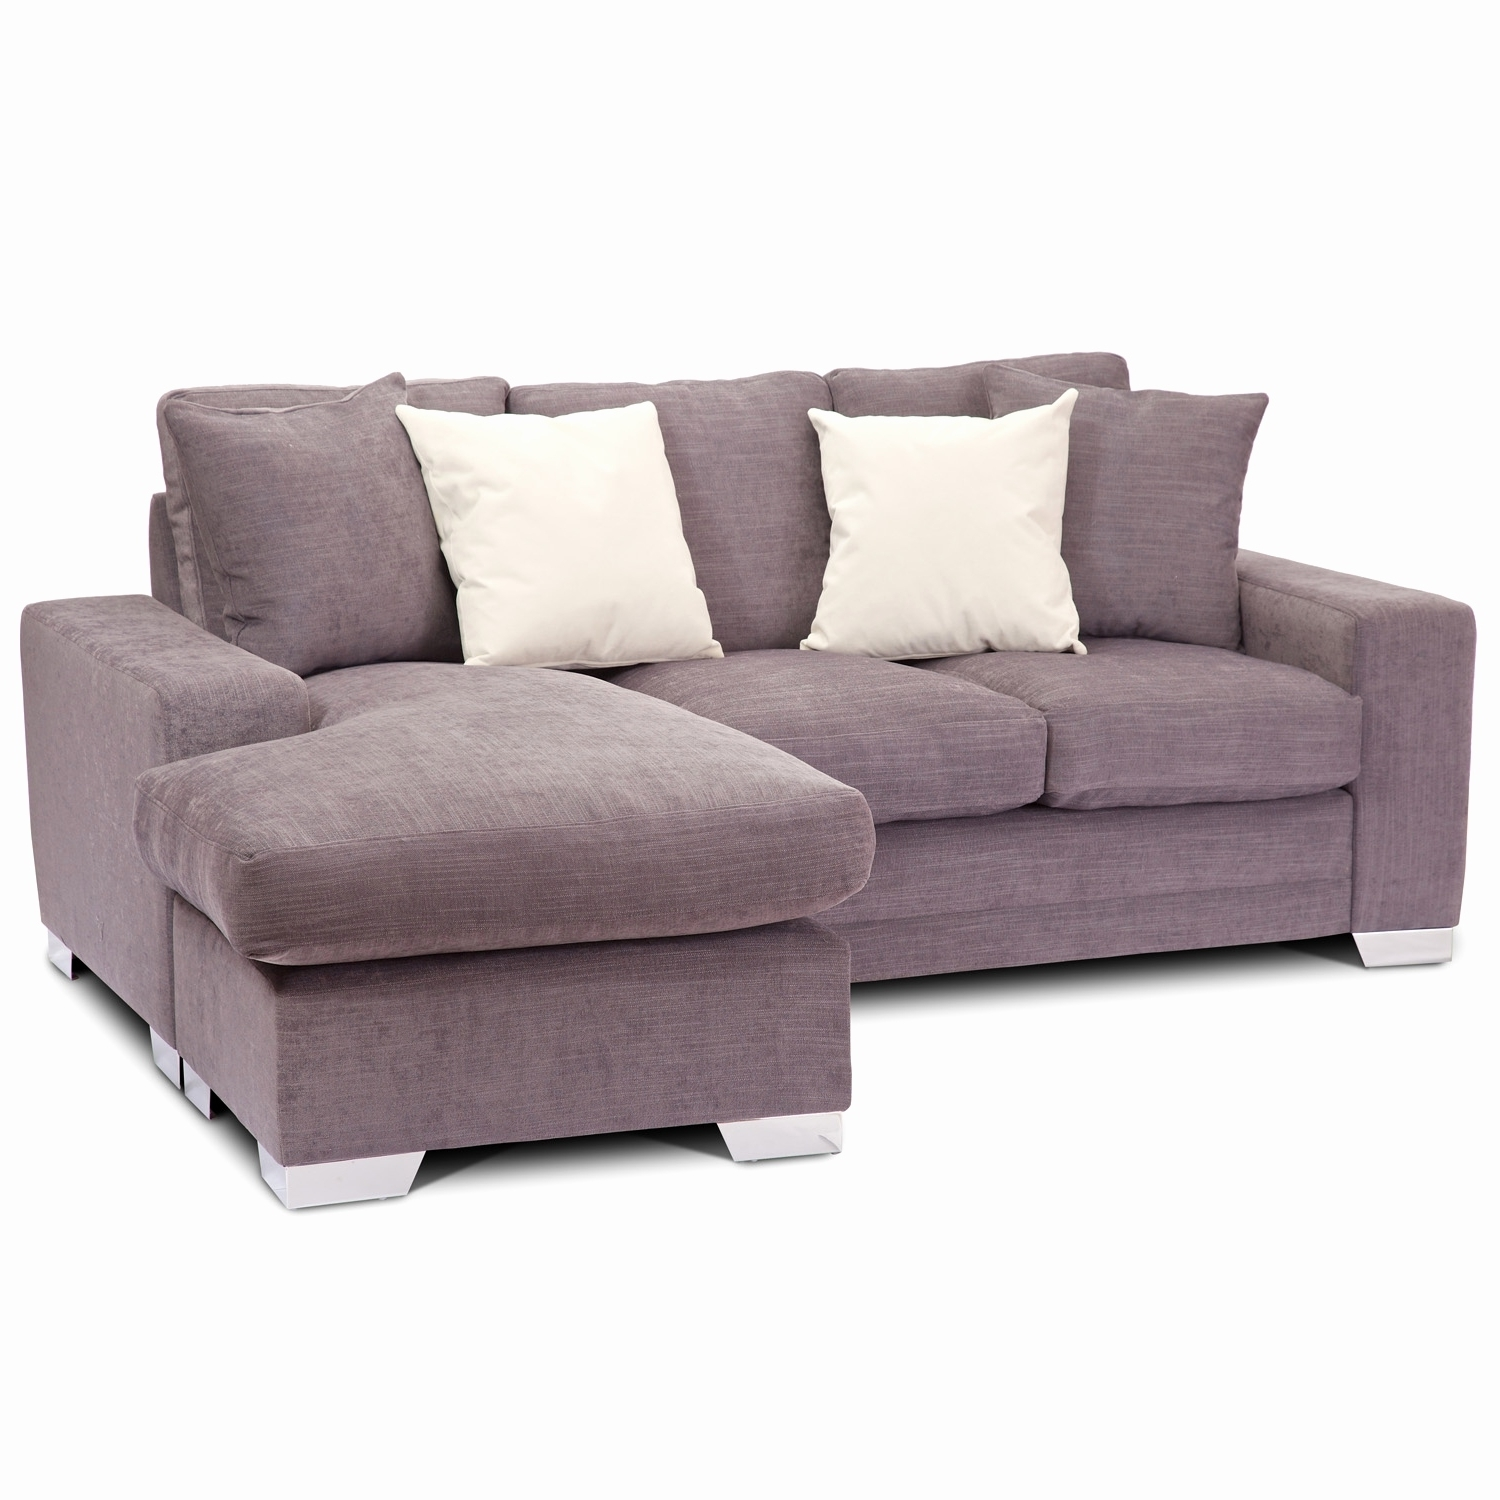 Sofabeds With Chaise Throughout Most Current Fresh 4 Seater Sofa Bed With Chaise 2018 – Couches Ideas (View 10 of 15)